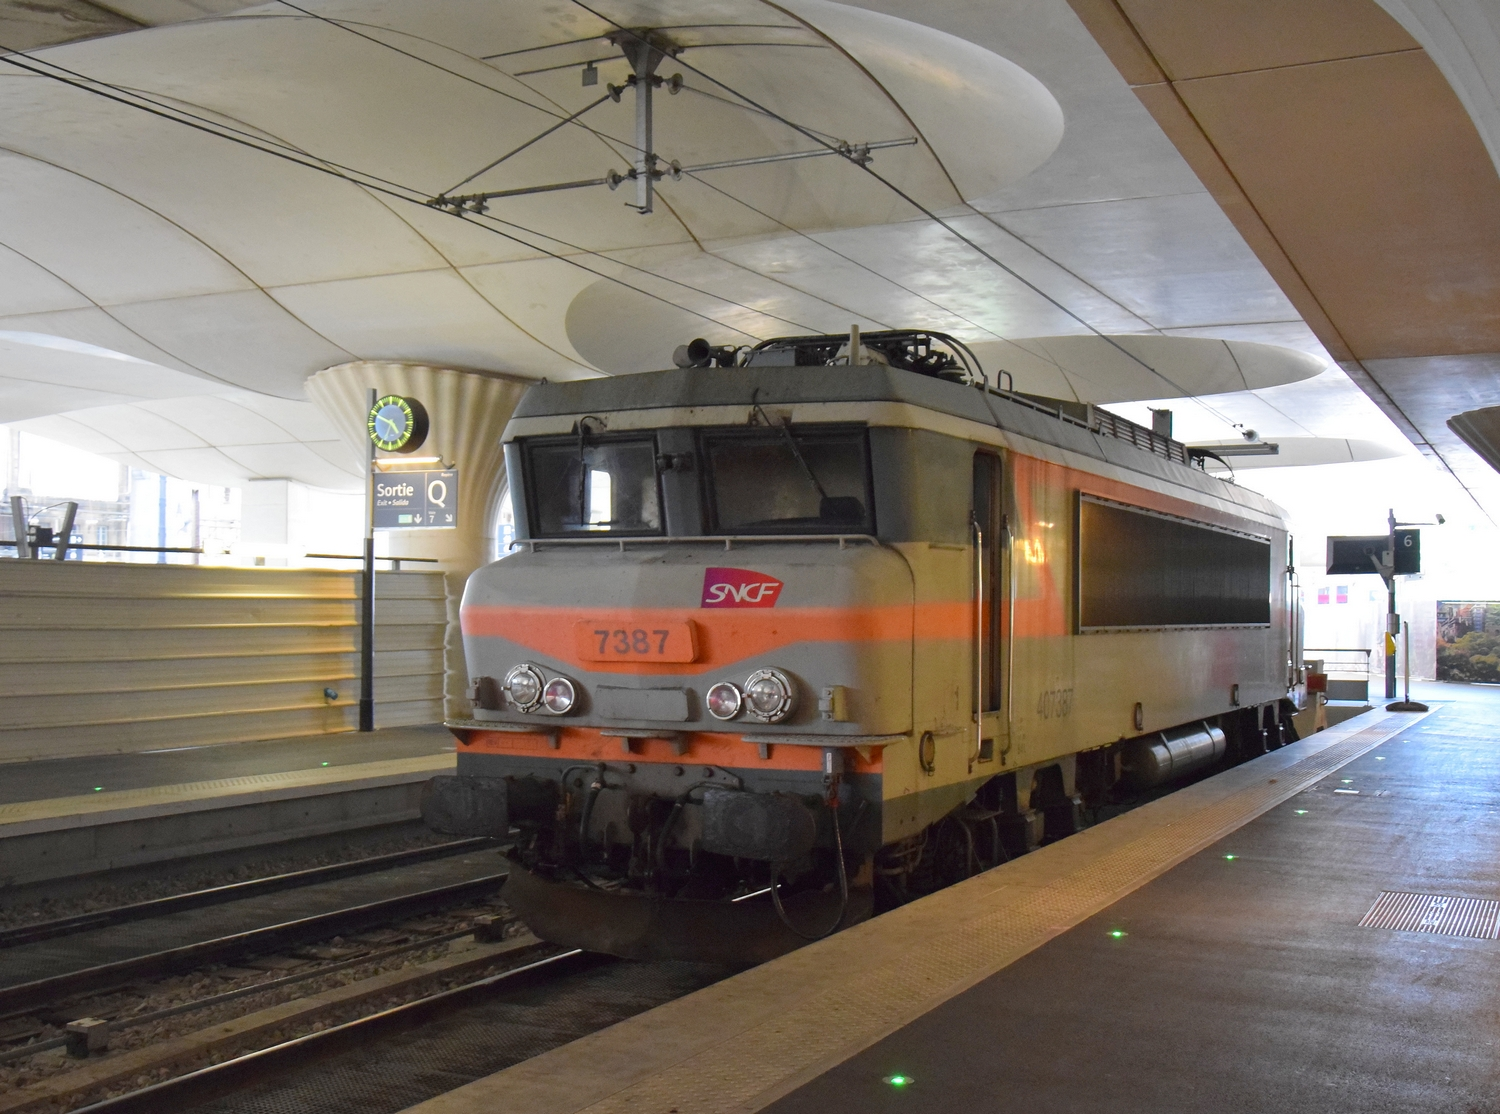 La passion du train a paris austerlitz et paris est avec for Train tours paris austerlitz